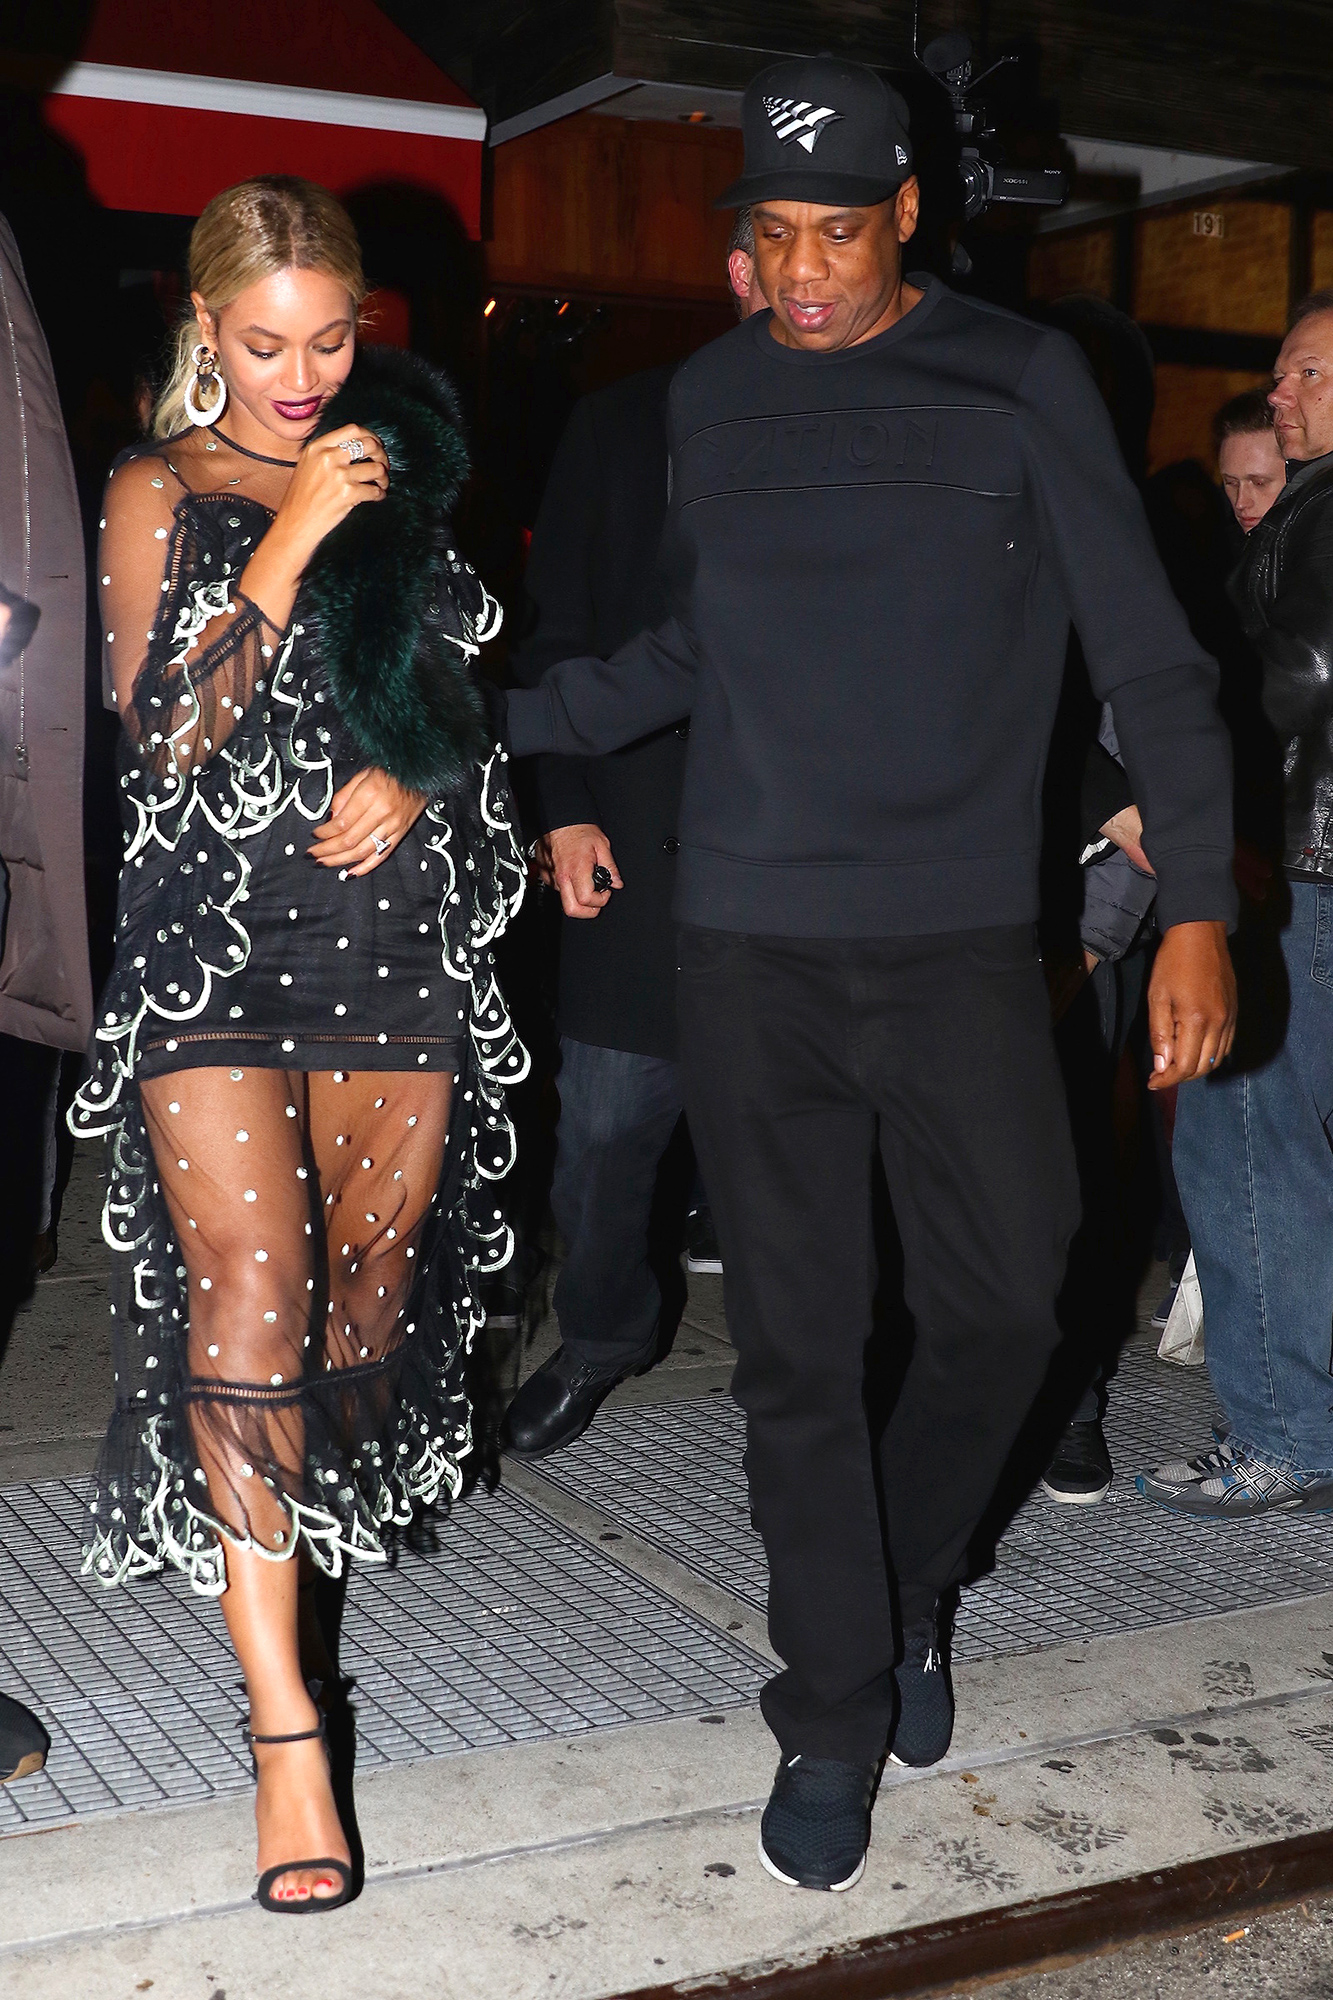 New York, NY - The power couple of the century, Beyonce and Jay Z, are seen arriving to the SNL after party with a very proud Solange who made her musical debut on the popular sketch show. They were also joined by Tina Knowles, and Solange's devoted husband Alan Ferguson. AKM-GSI